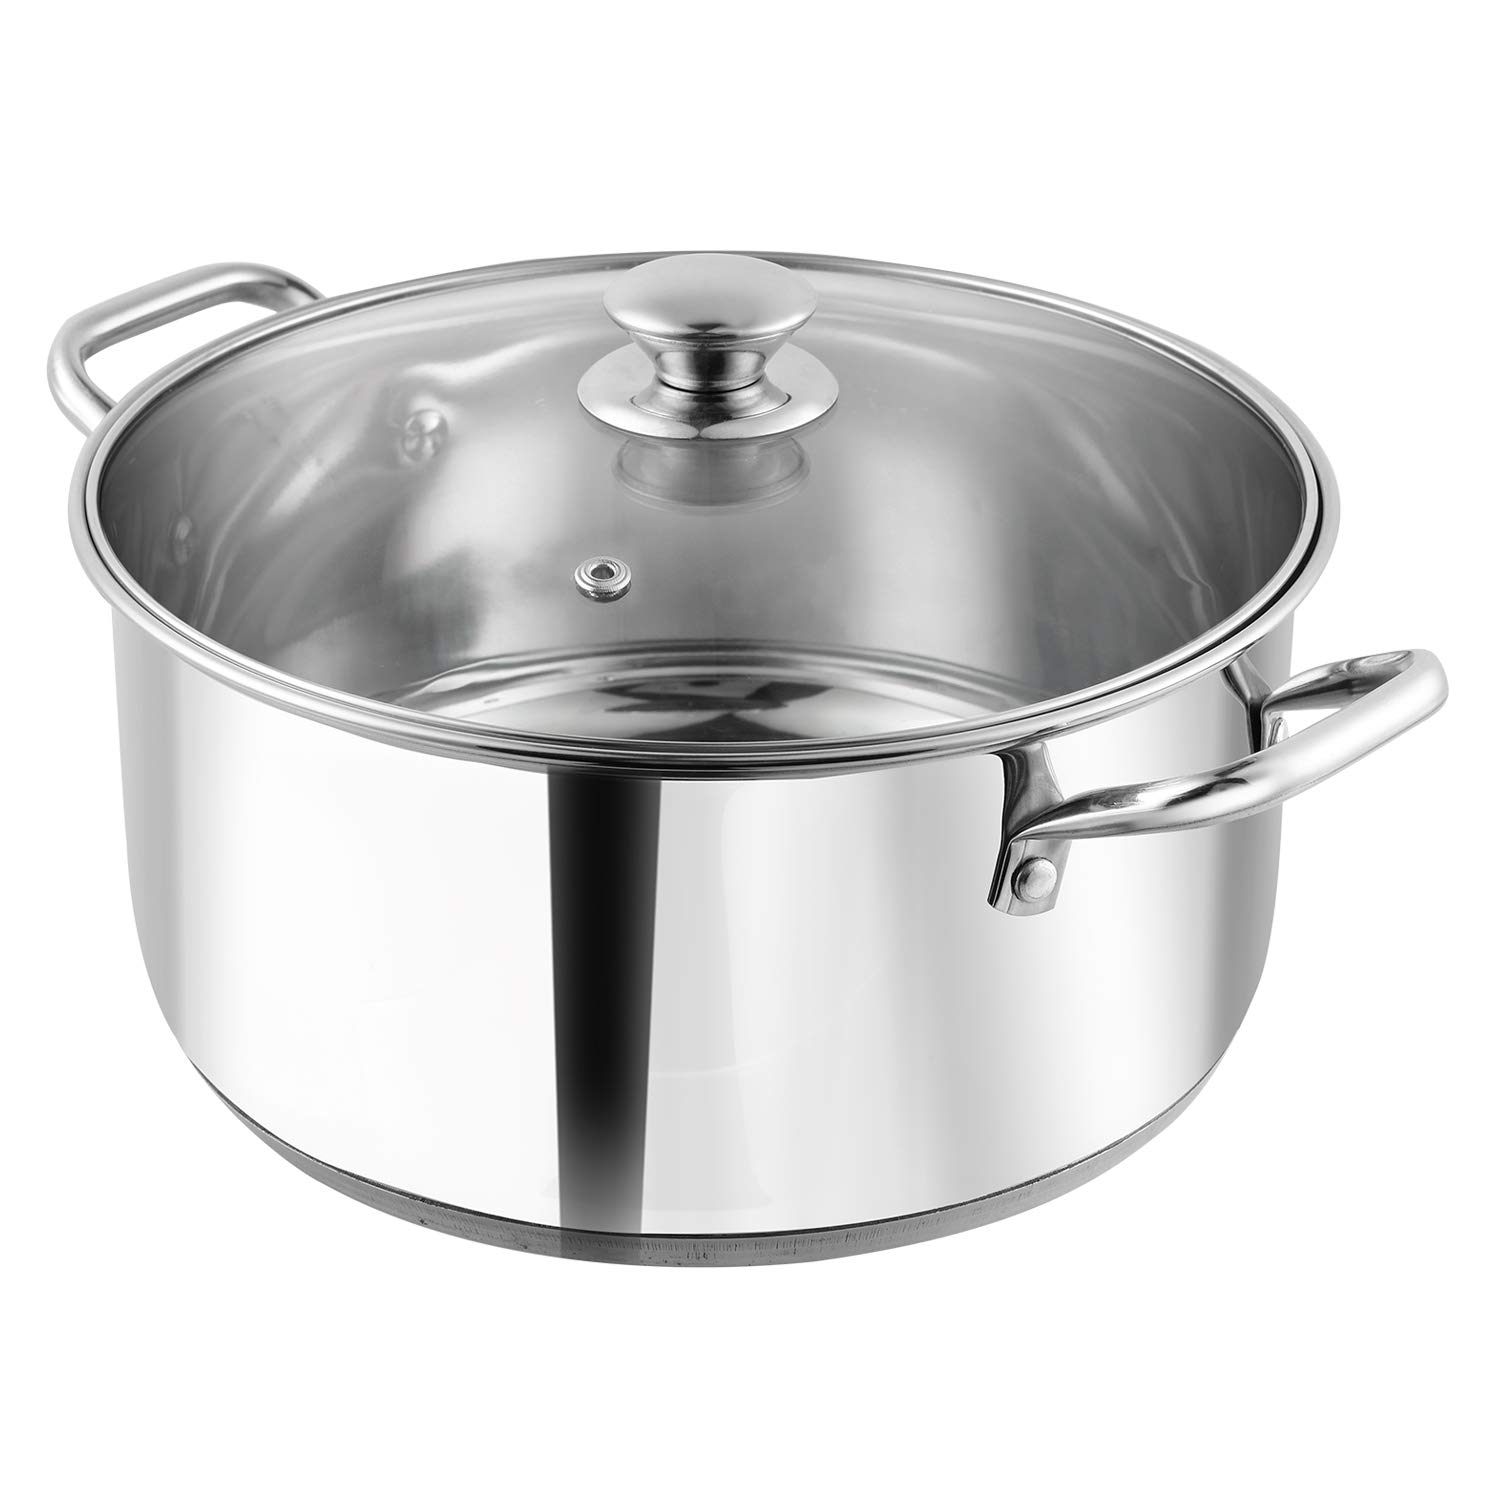 Vinod Rom-18 18cm casserole with lid 2.2ltr, Silver (Stainless Steel, Induction Friendly)